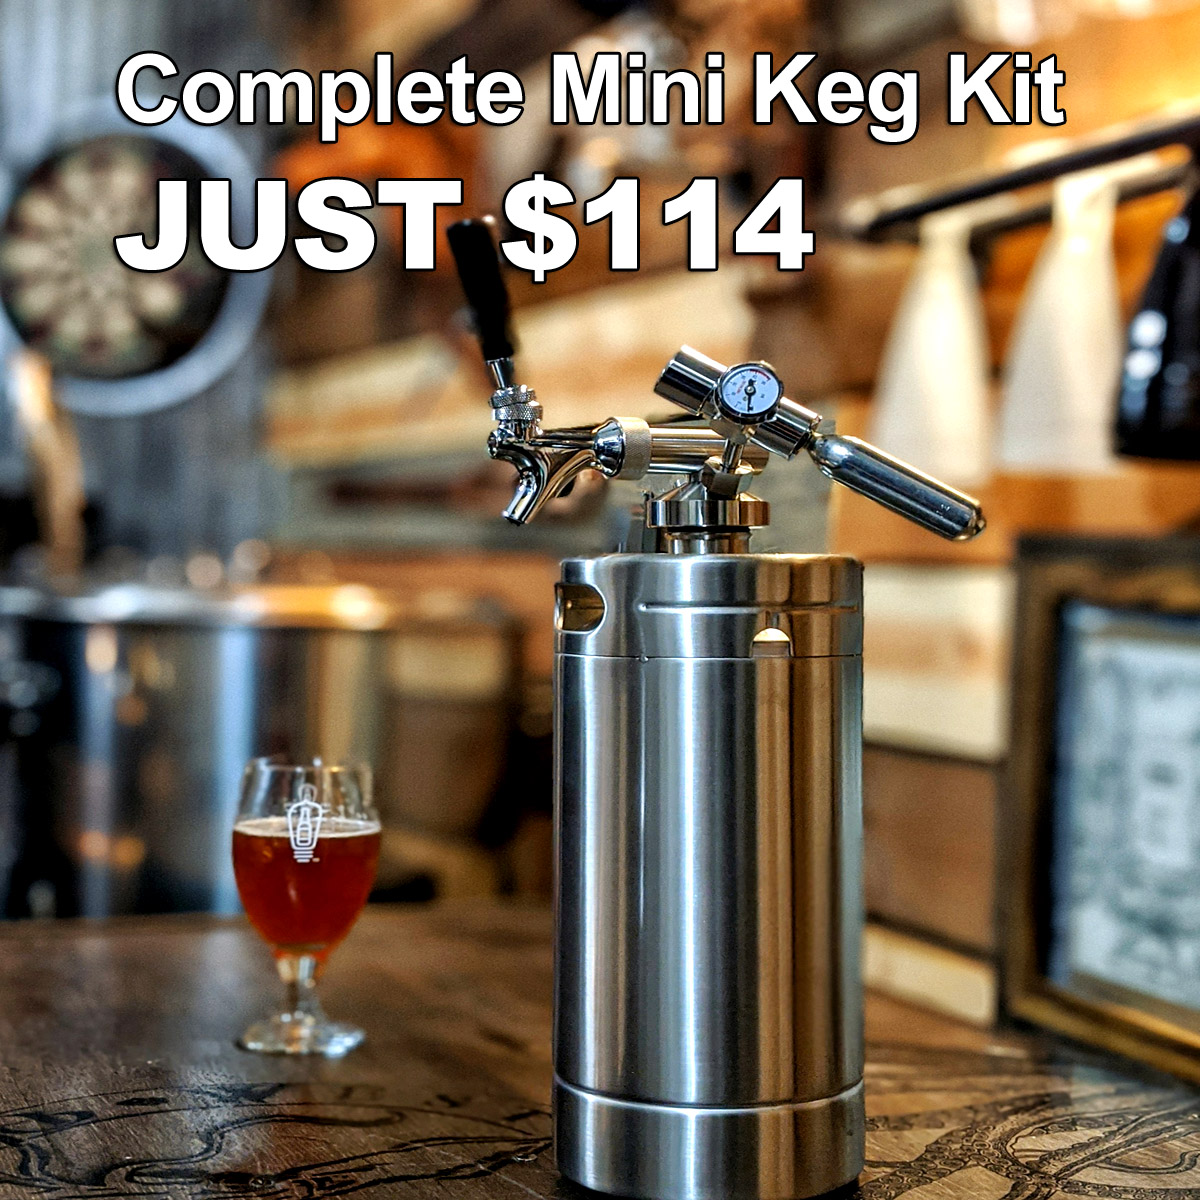 Get a Complete Stainless Steel 128oz Mini Keg System for Just $114, Plus FREE SHIPPING; while this deal lasts! Coupon Code